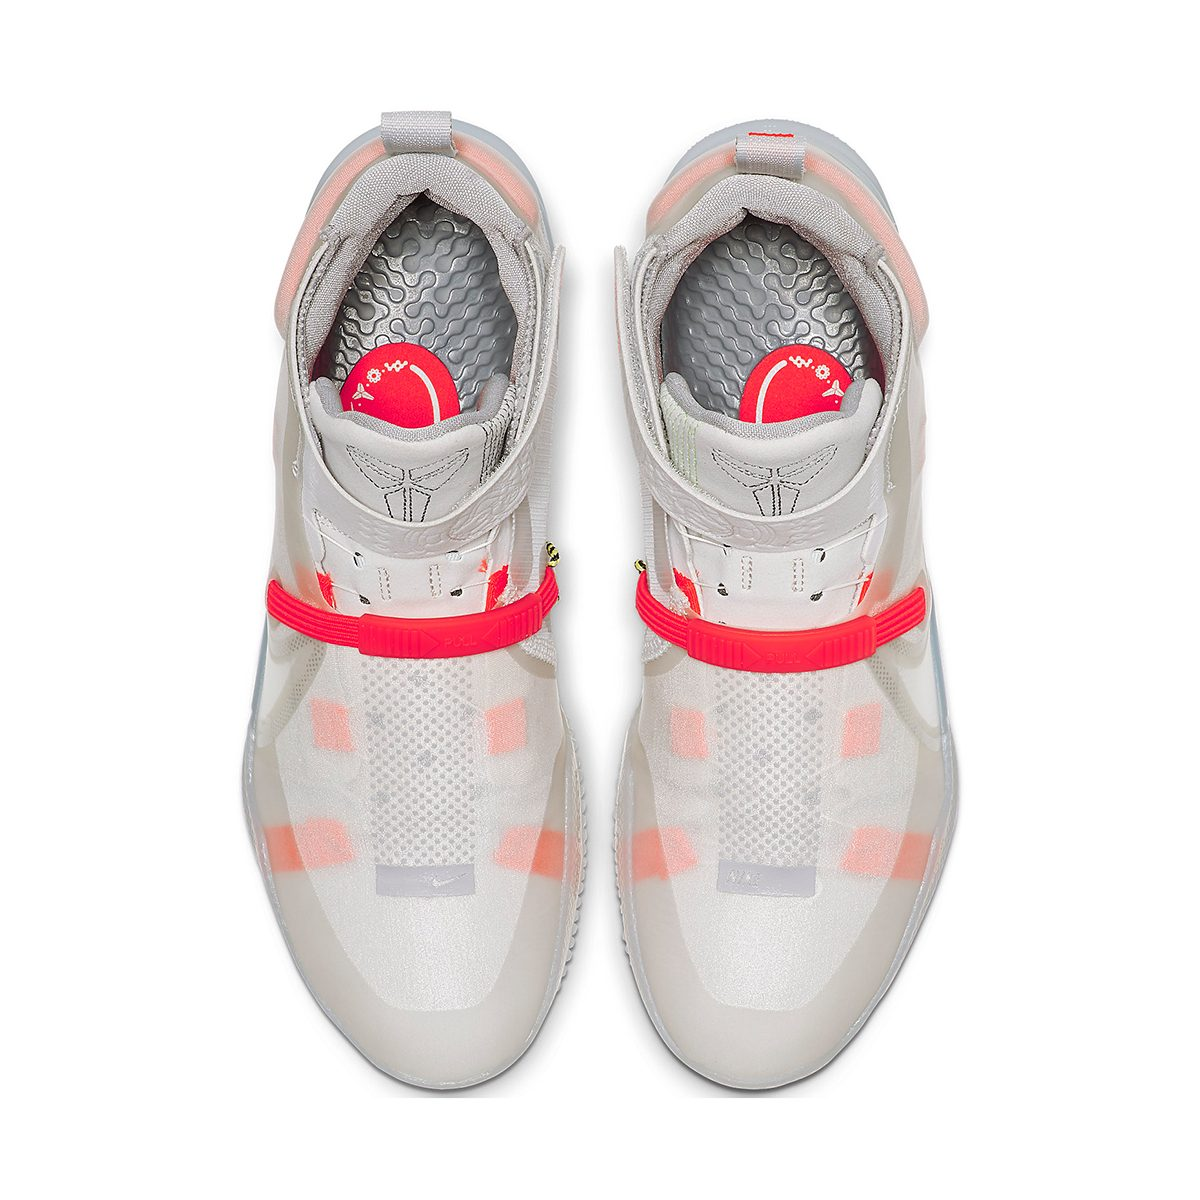 best cheap 7f07d 4a5fc Available Now // Nike Kobe AD NXT